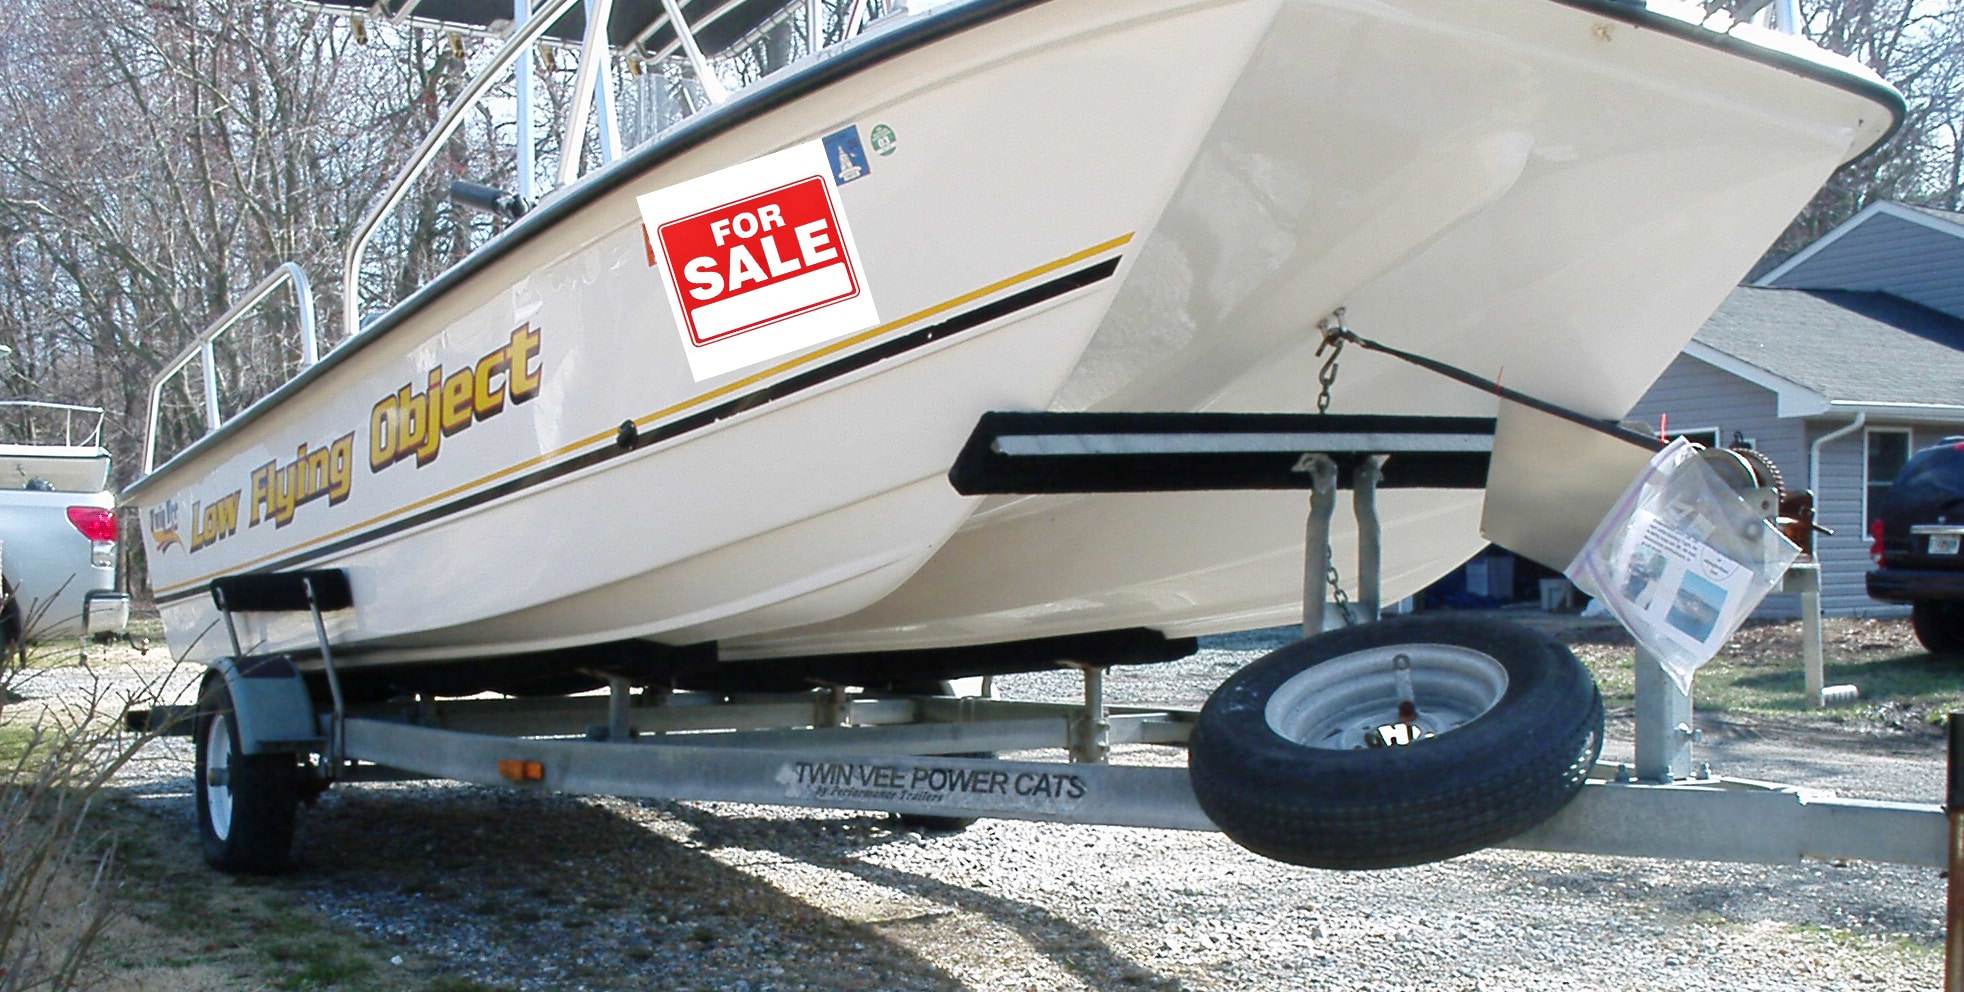 used boat tips